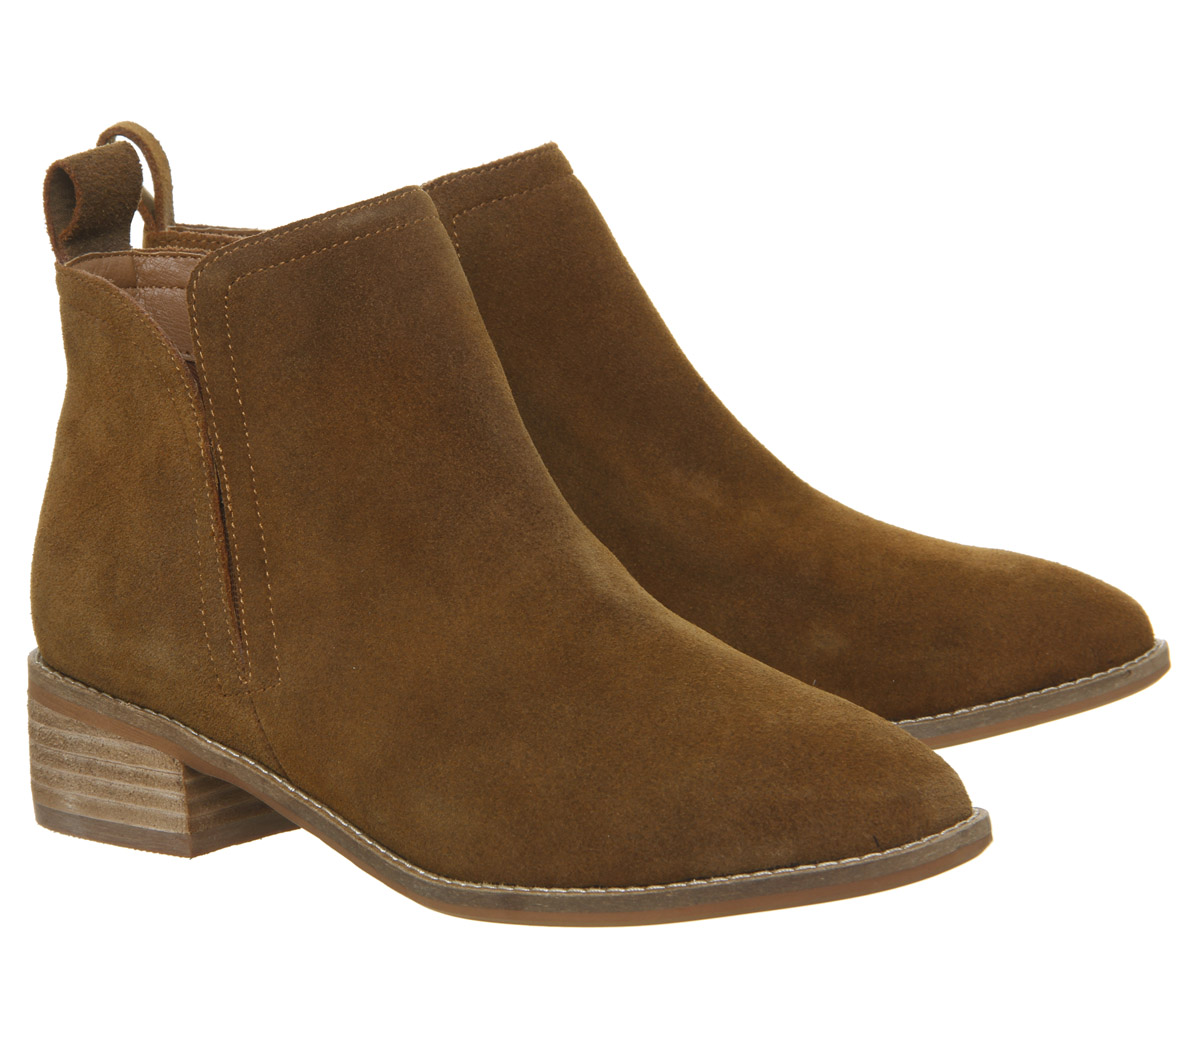 Damenschuhe Ankle Office Andreas Flat Ankle Damenschuhe Stiefel TAN SUEDE Stiefel c21dc3